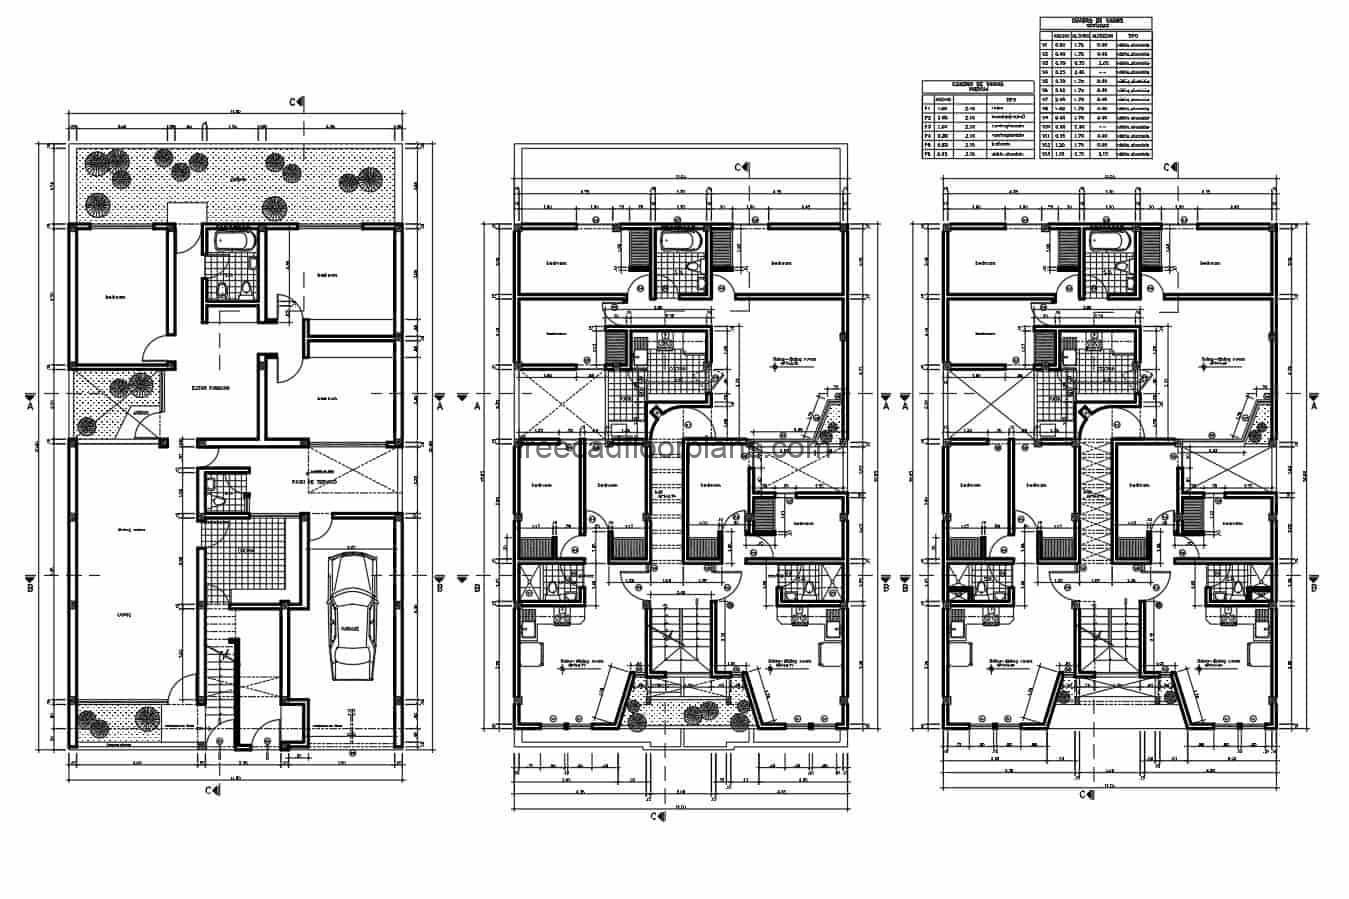 Housing project of three levels in 2D architectural plans, dimensions, facades and sections, each housing unit has two houses per level, each house has living-dining area, kitchen and laundry area and two bedrooms with two bathrooms. Blueprints in 2D for free-download, editable plan in DWG format from Autocad.